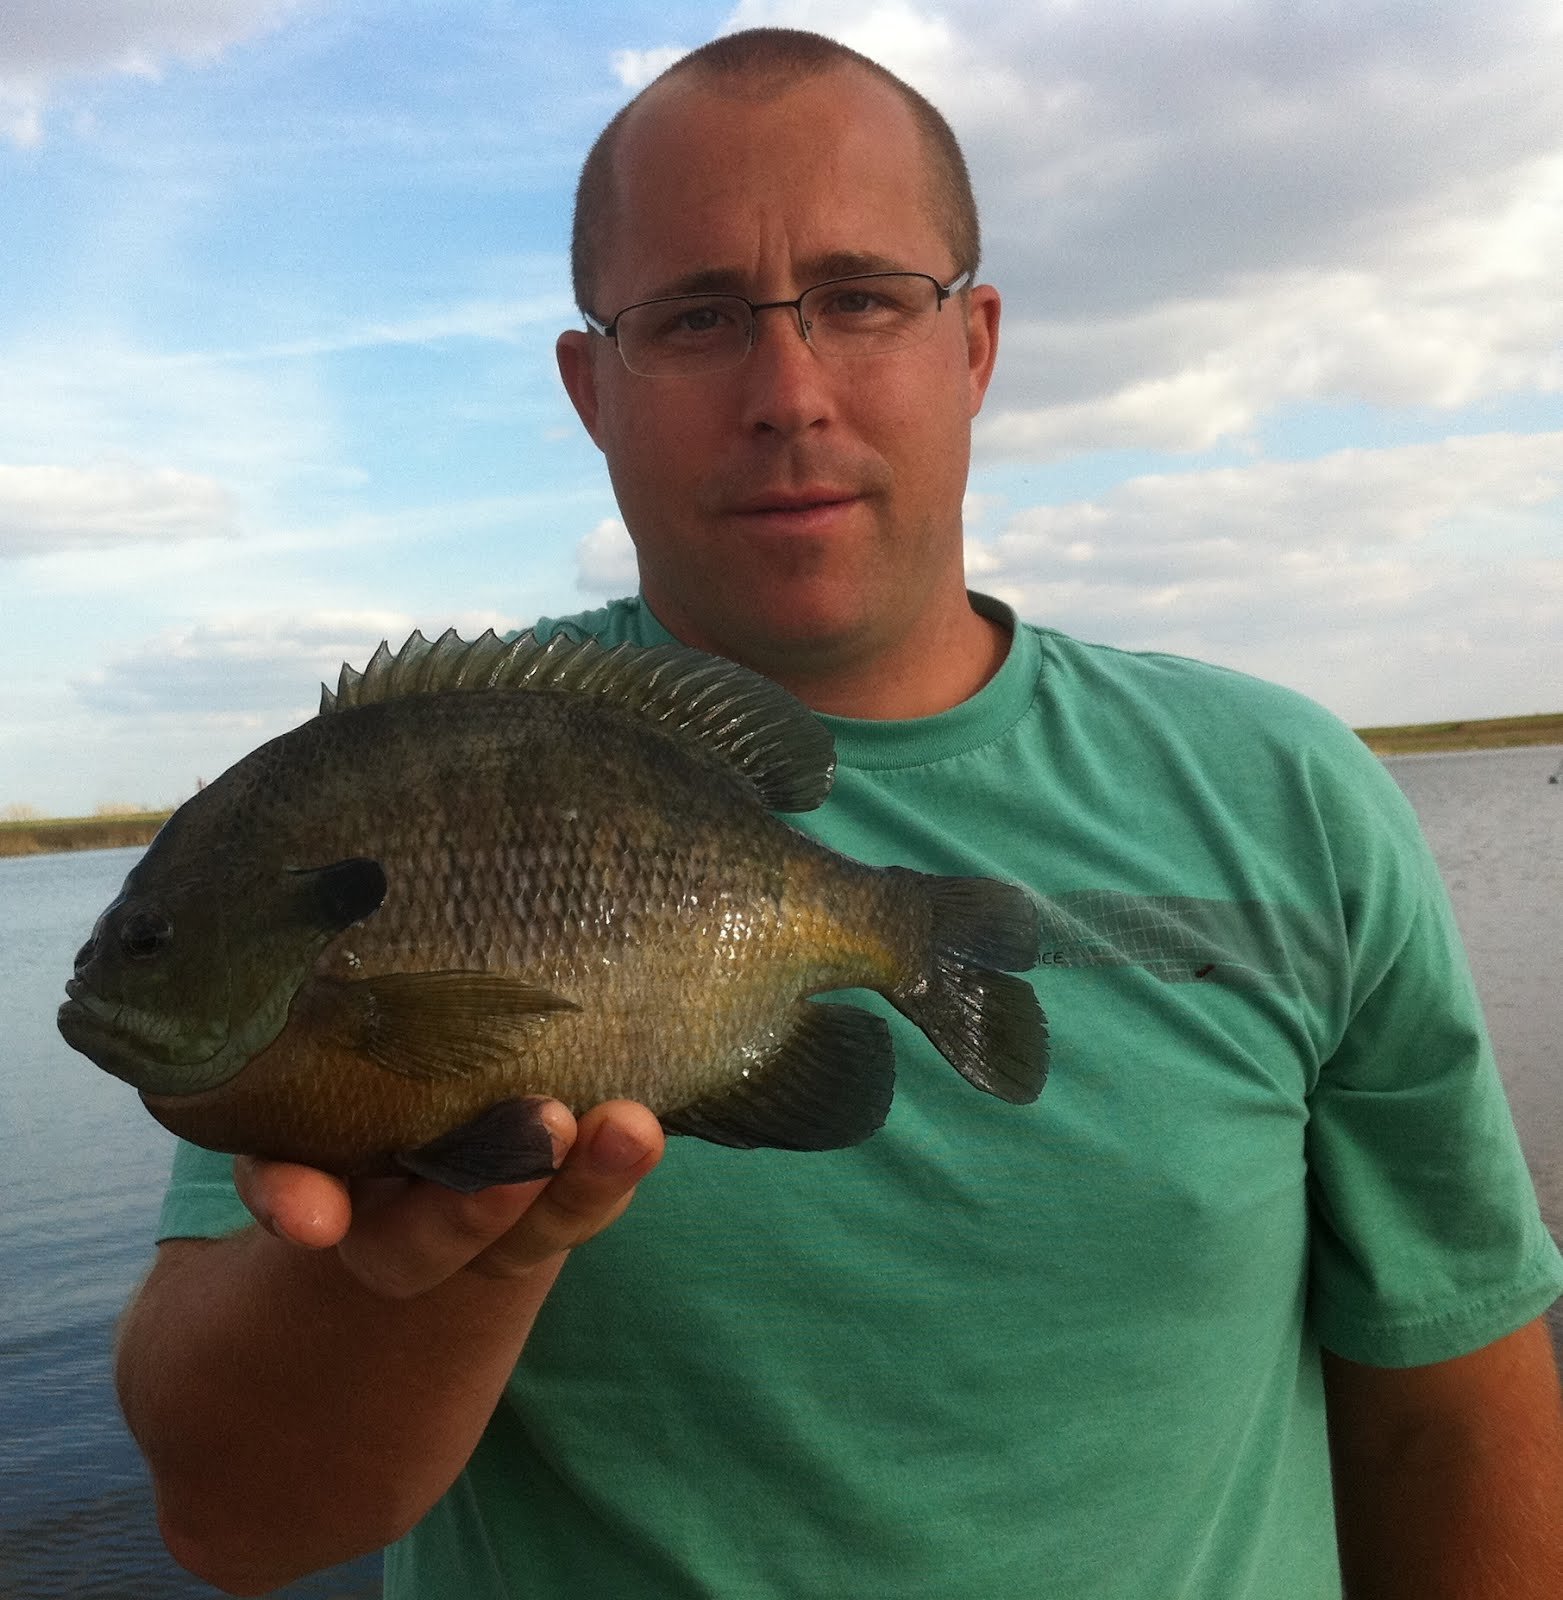 Huge Bluegill